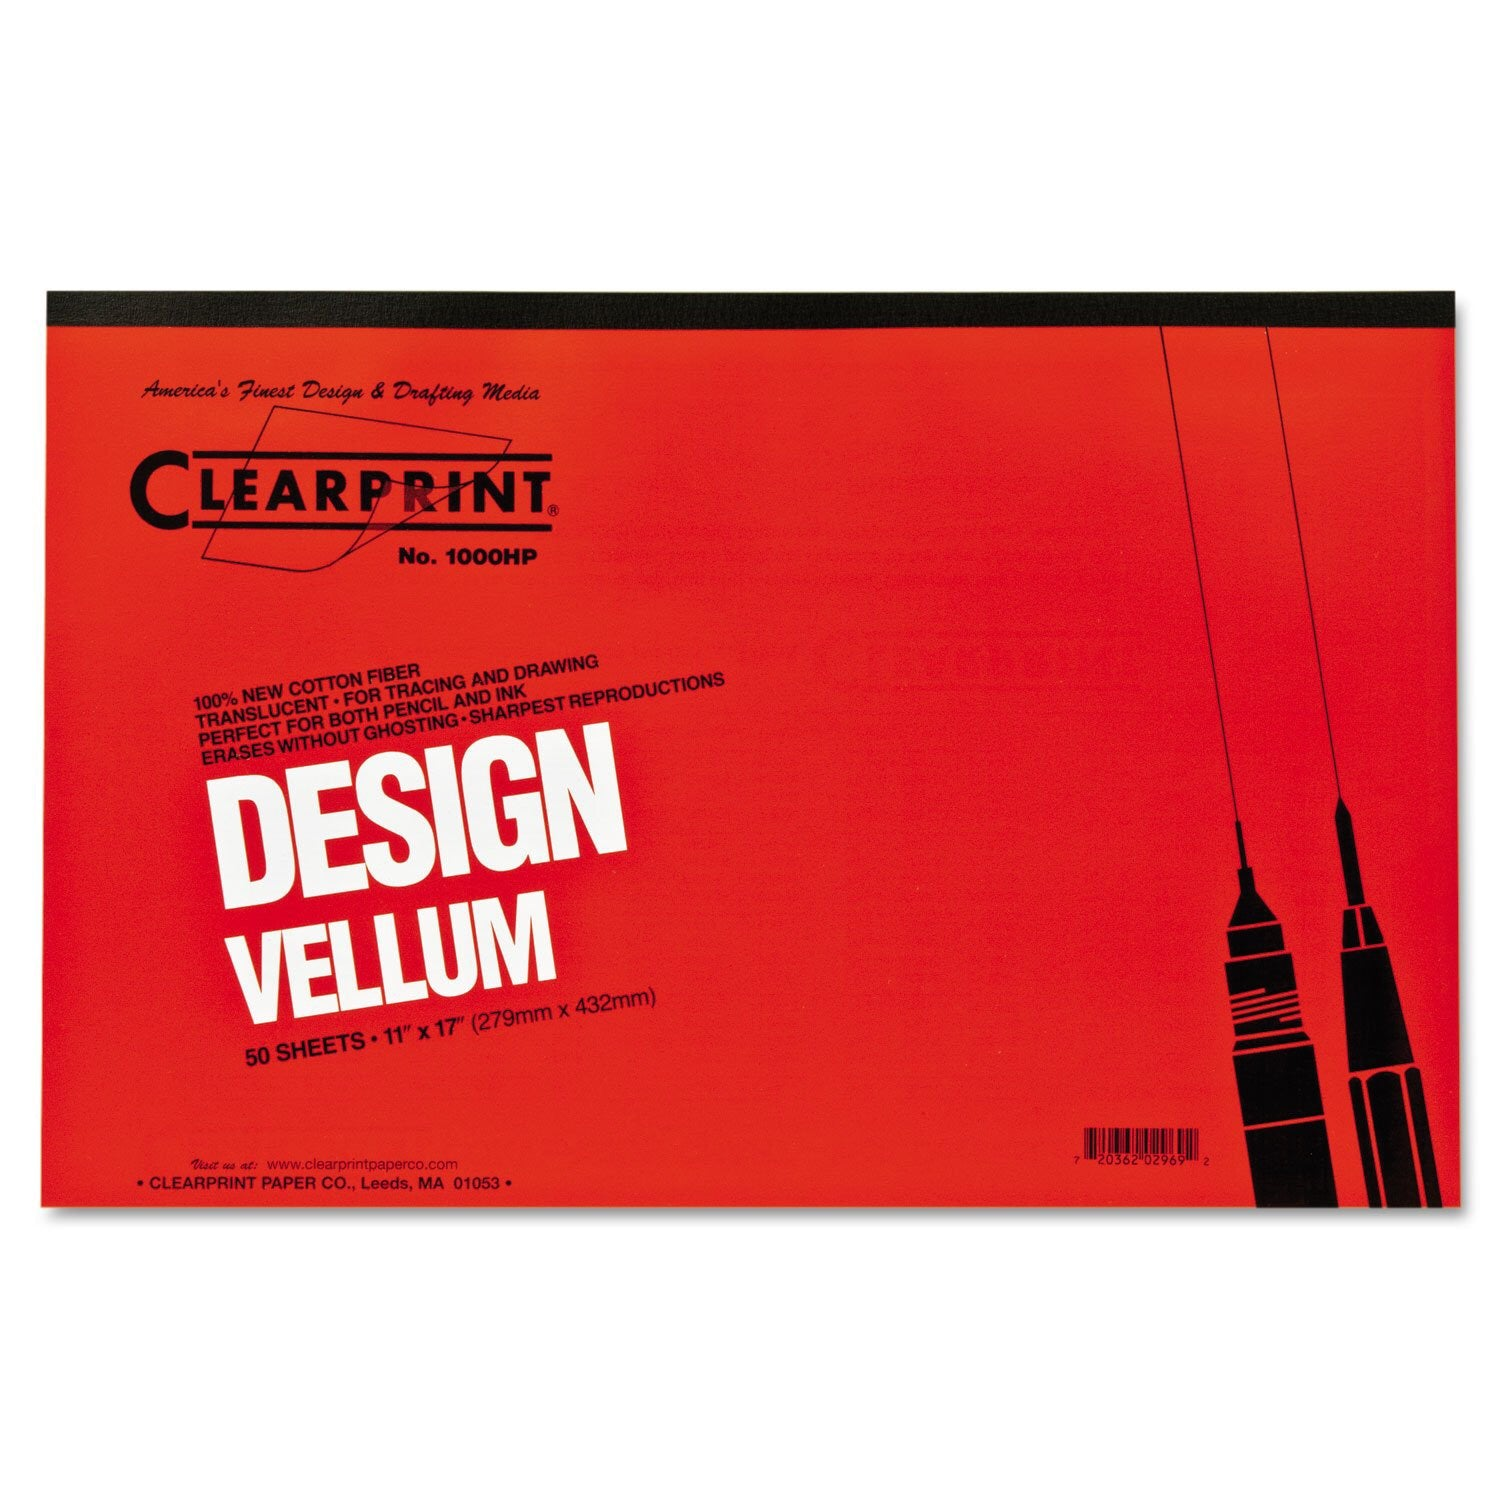 Clearprint Design Vellum - Unprinted / 1000H / 50 sheets